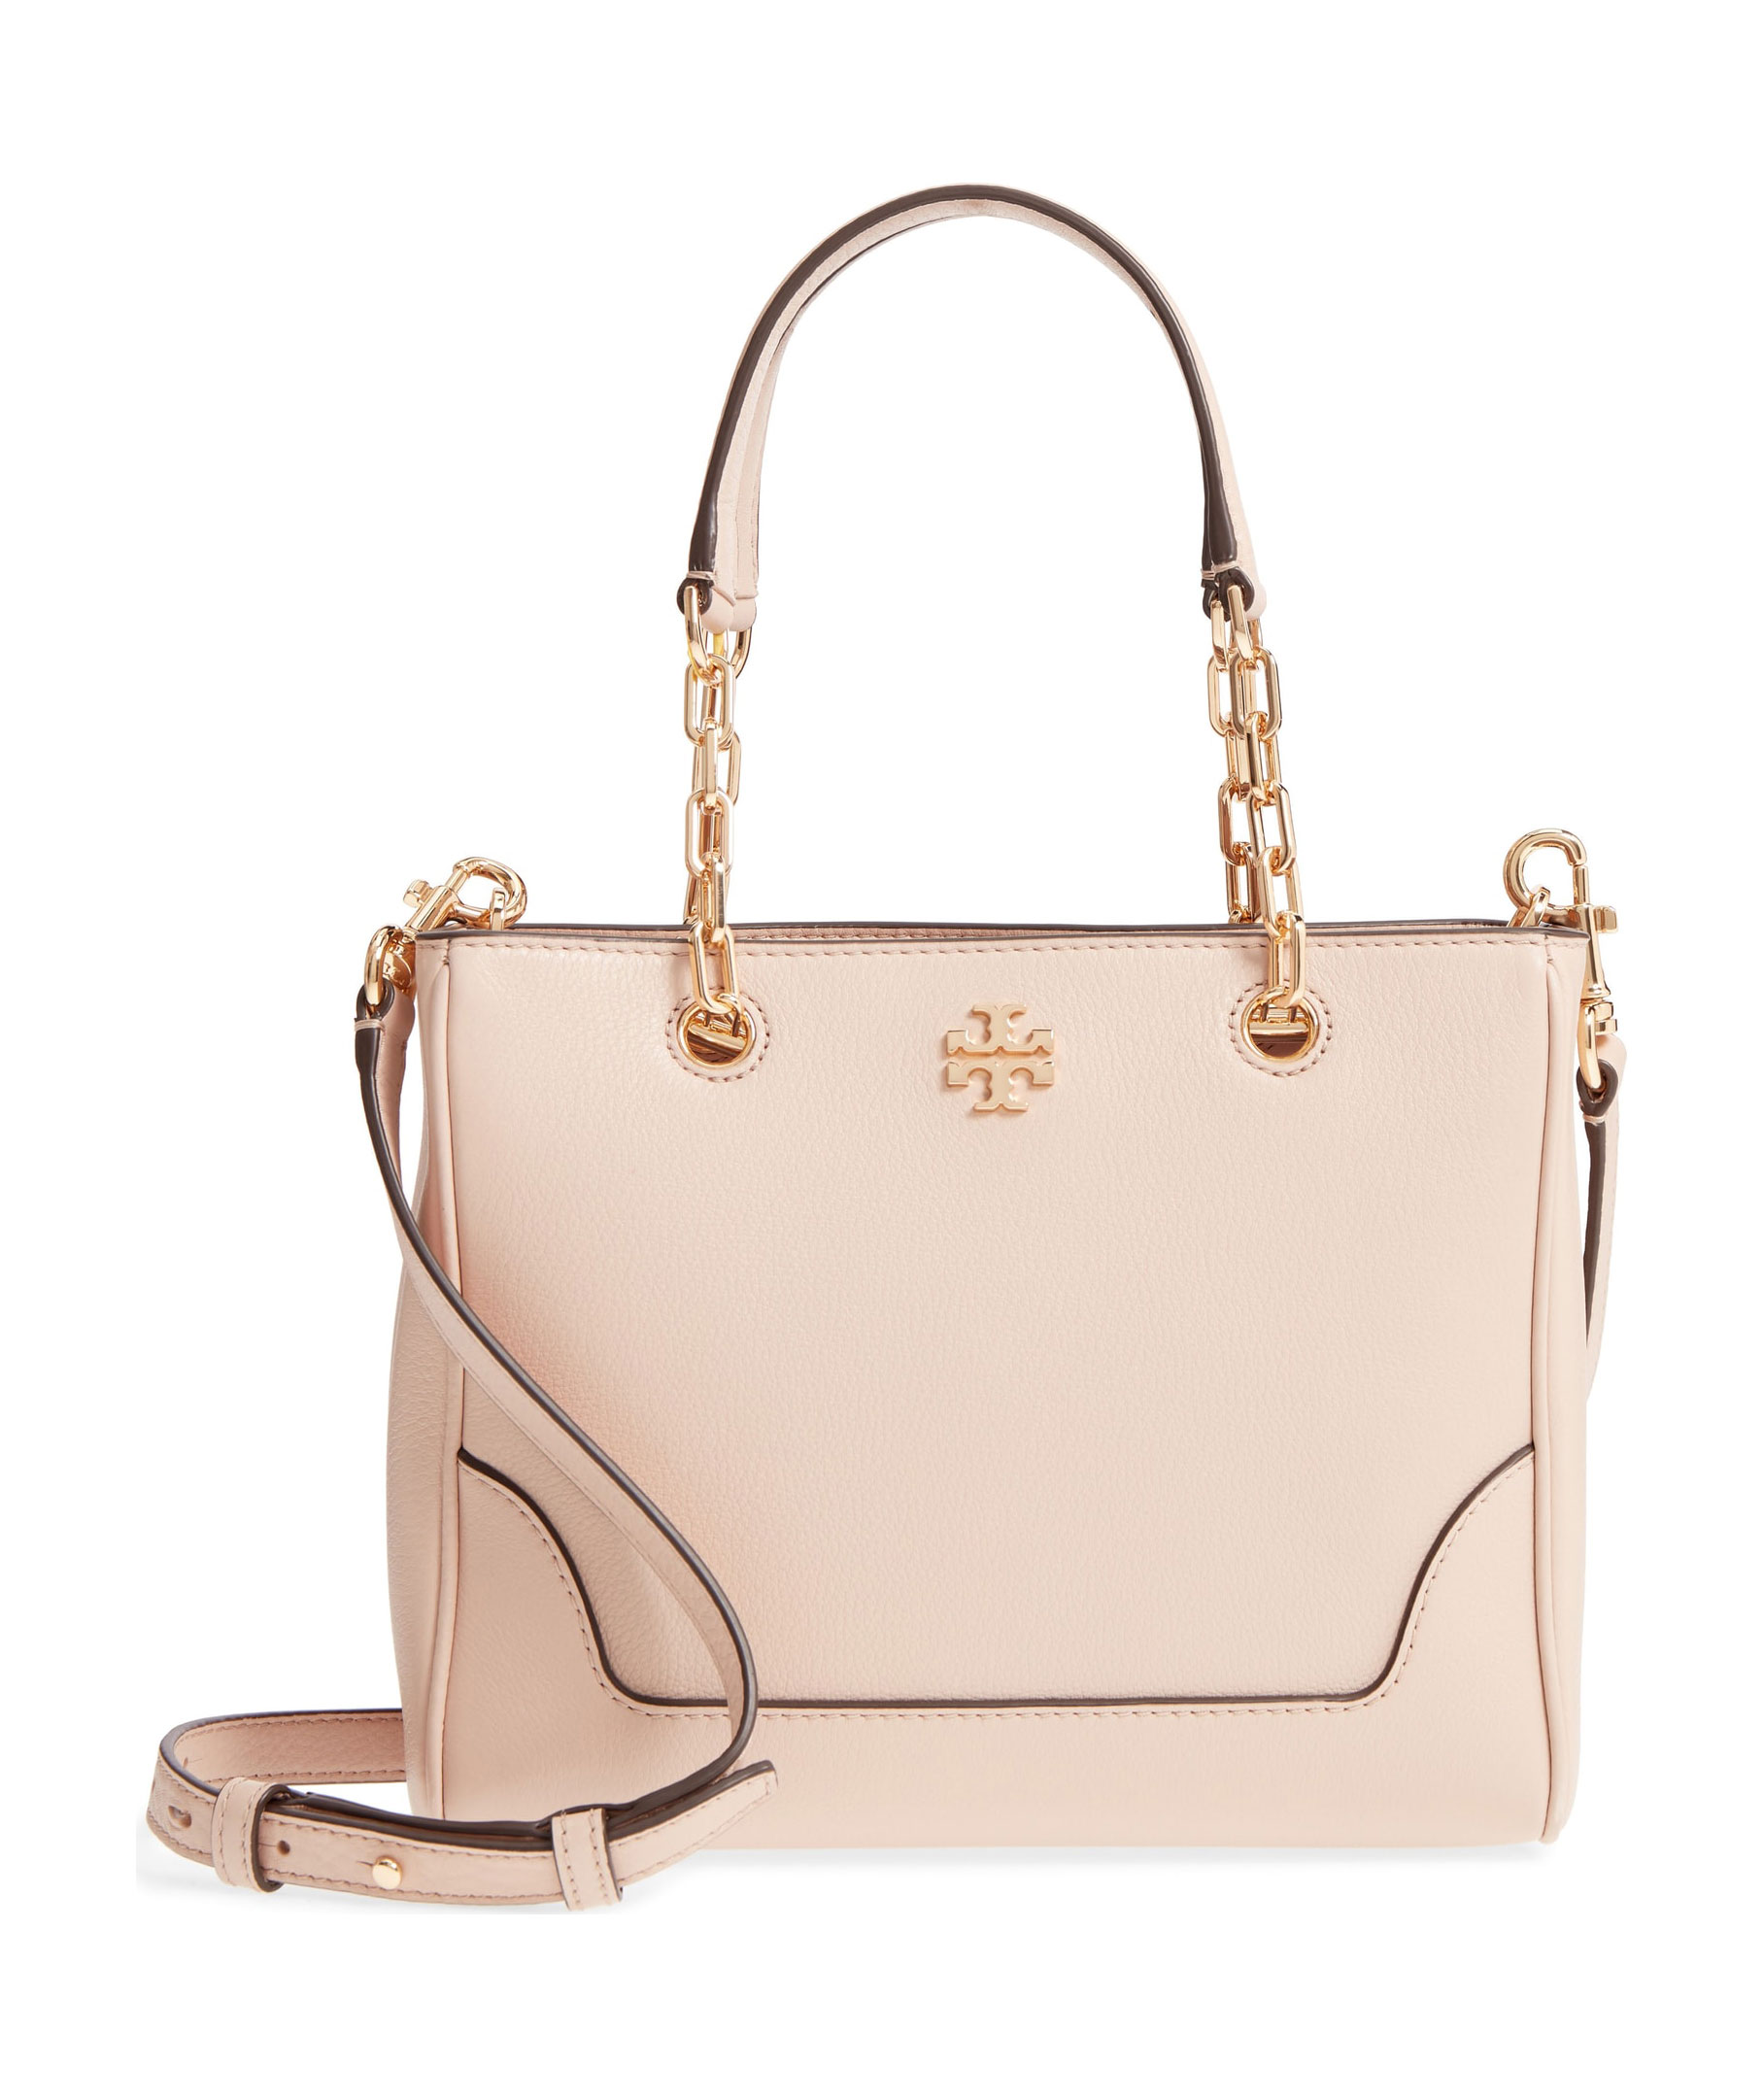 f3d2a680c424 5 Designer Handbags We're Obsessed With From the Nordstrom Anniversary Sale